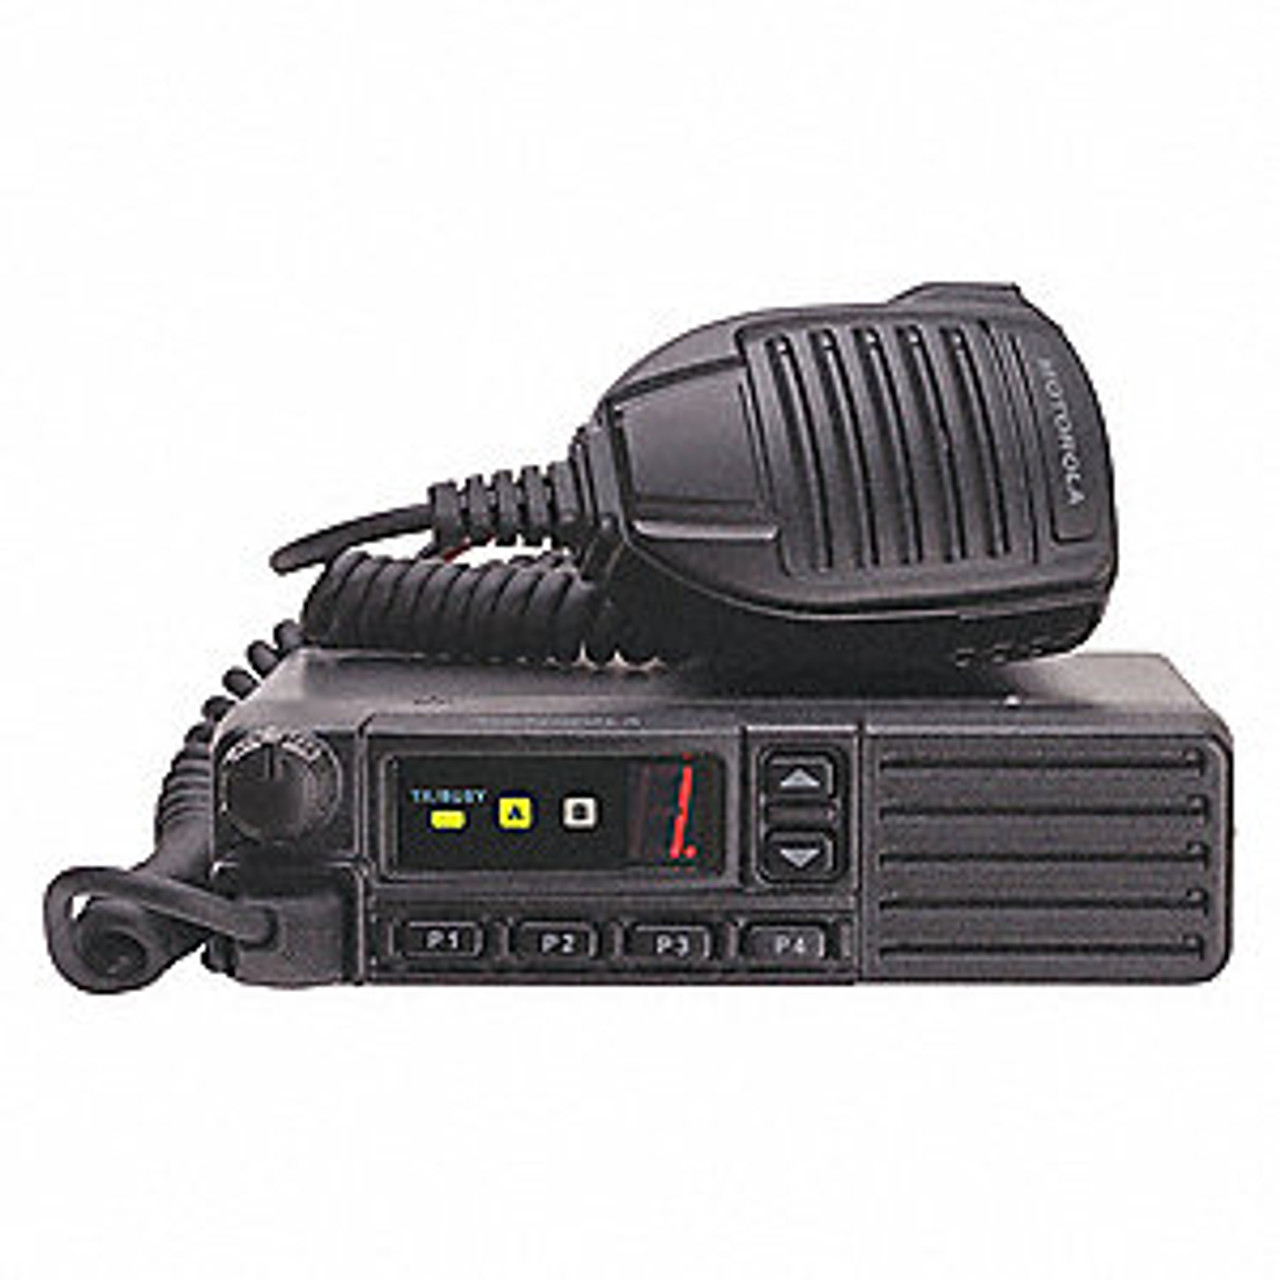 Motorola VX-2100 45 Watt 8 Channel Mobile Two Way Radio